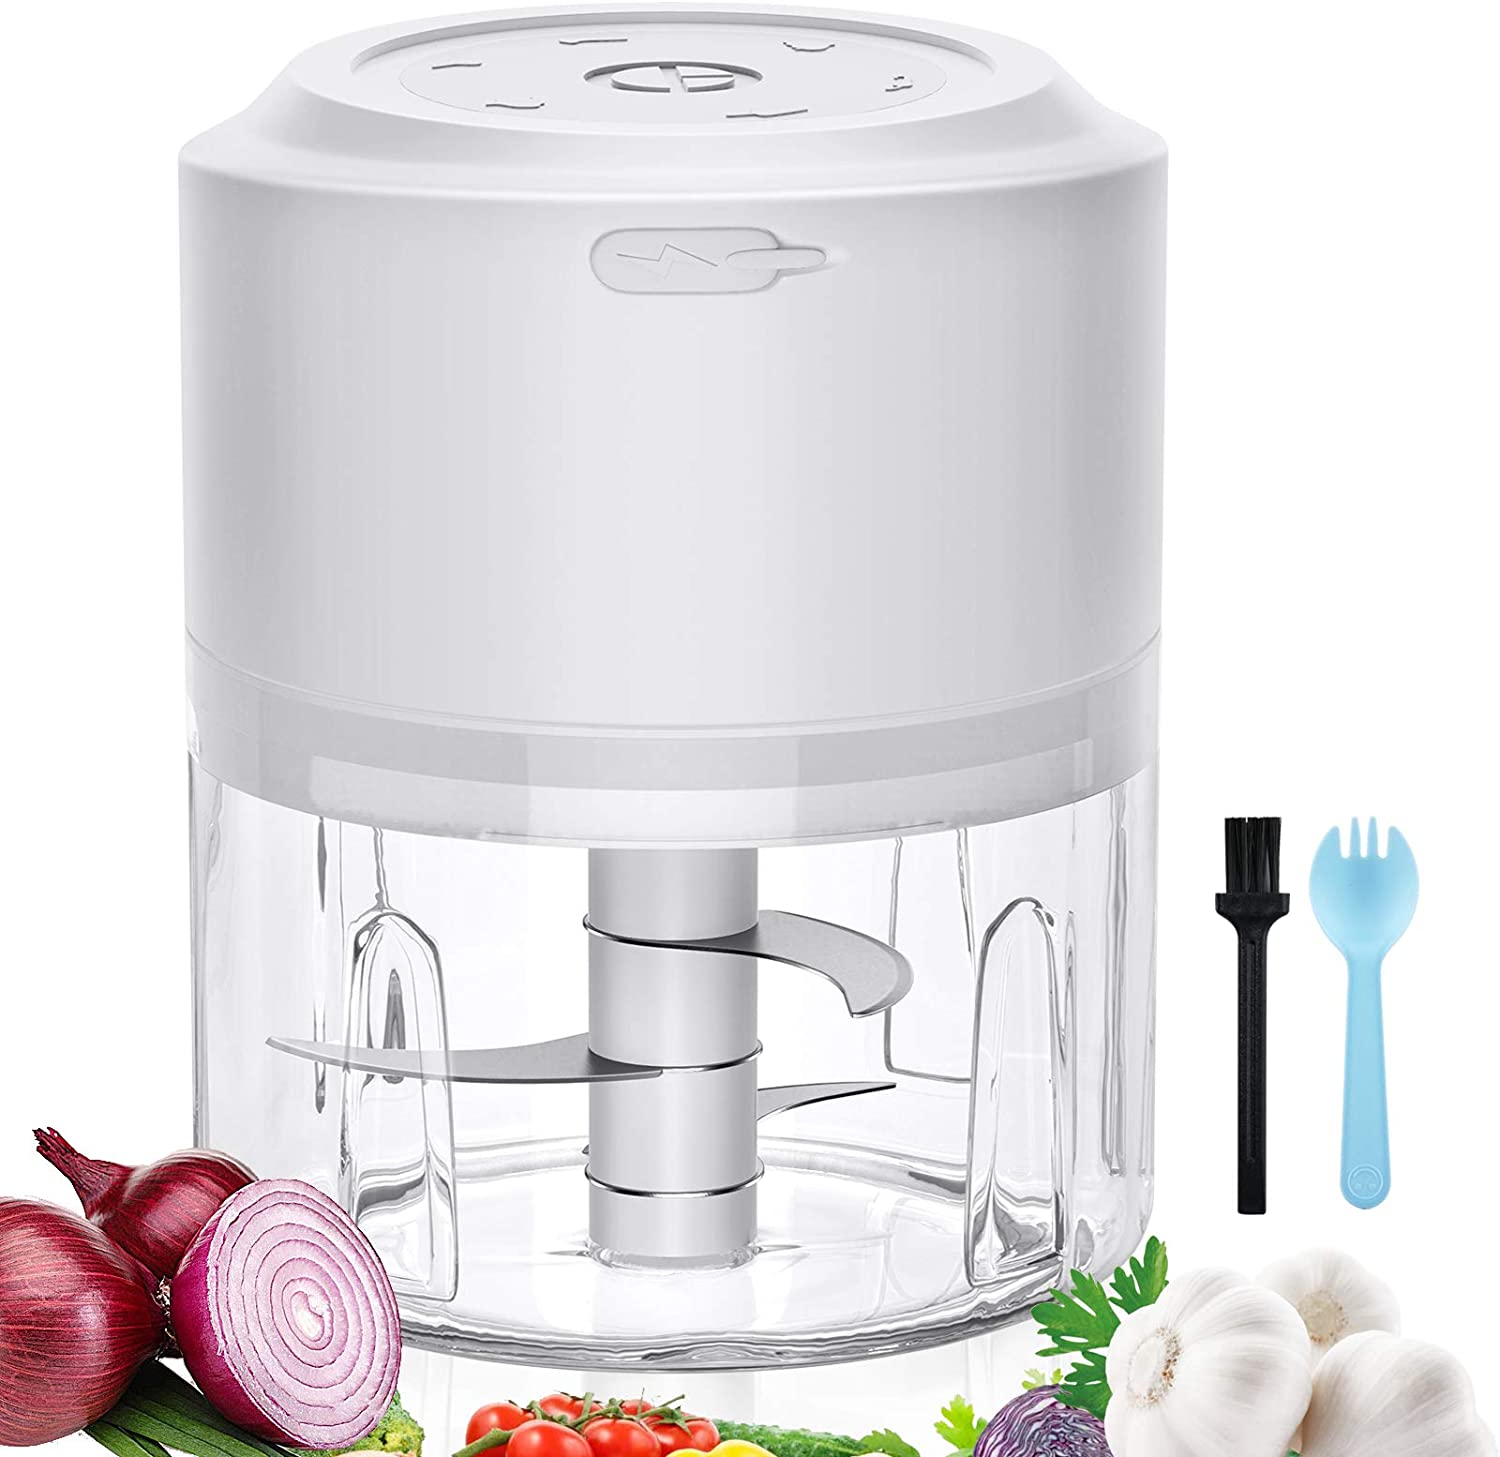 ZEBRE Mini Electric Garlic Chopper Small Food Processor Electric(200ML), Cordless Spice Grinder Chopper Mincer Blender for Garlic Ginger Onion Chili Pumpkin Veggies - White